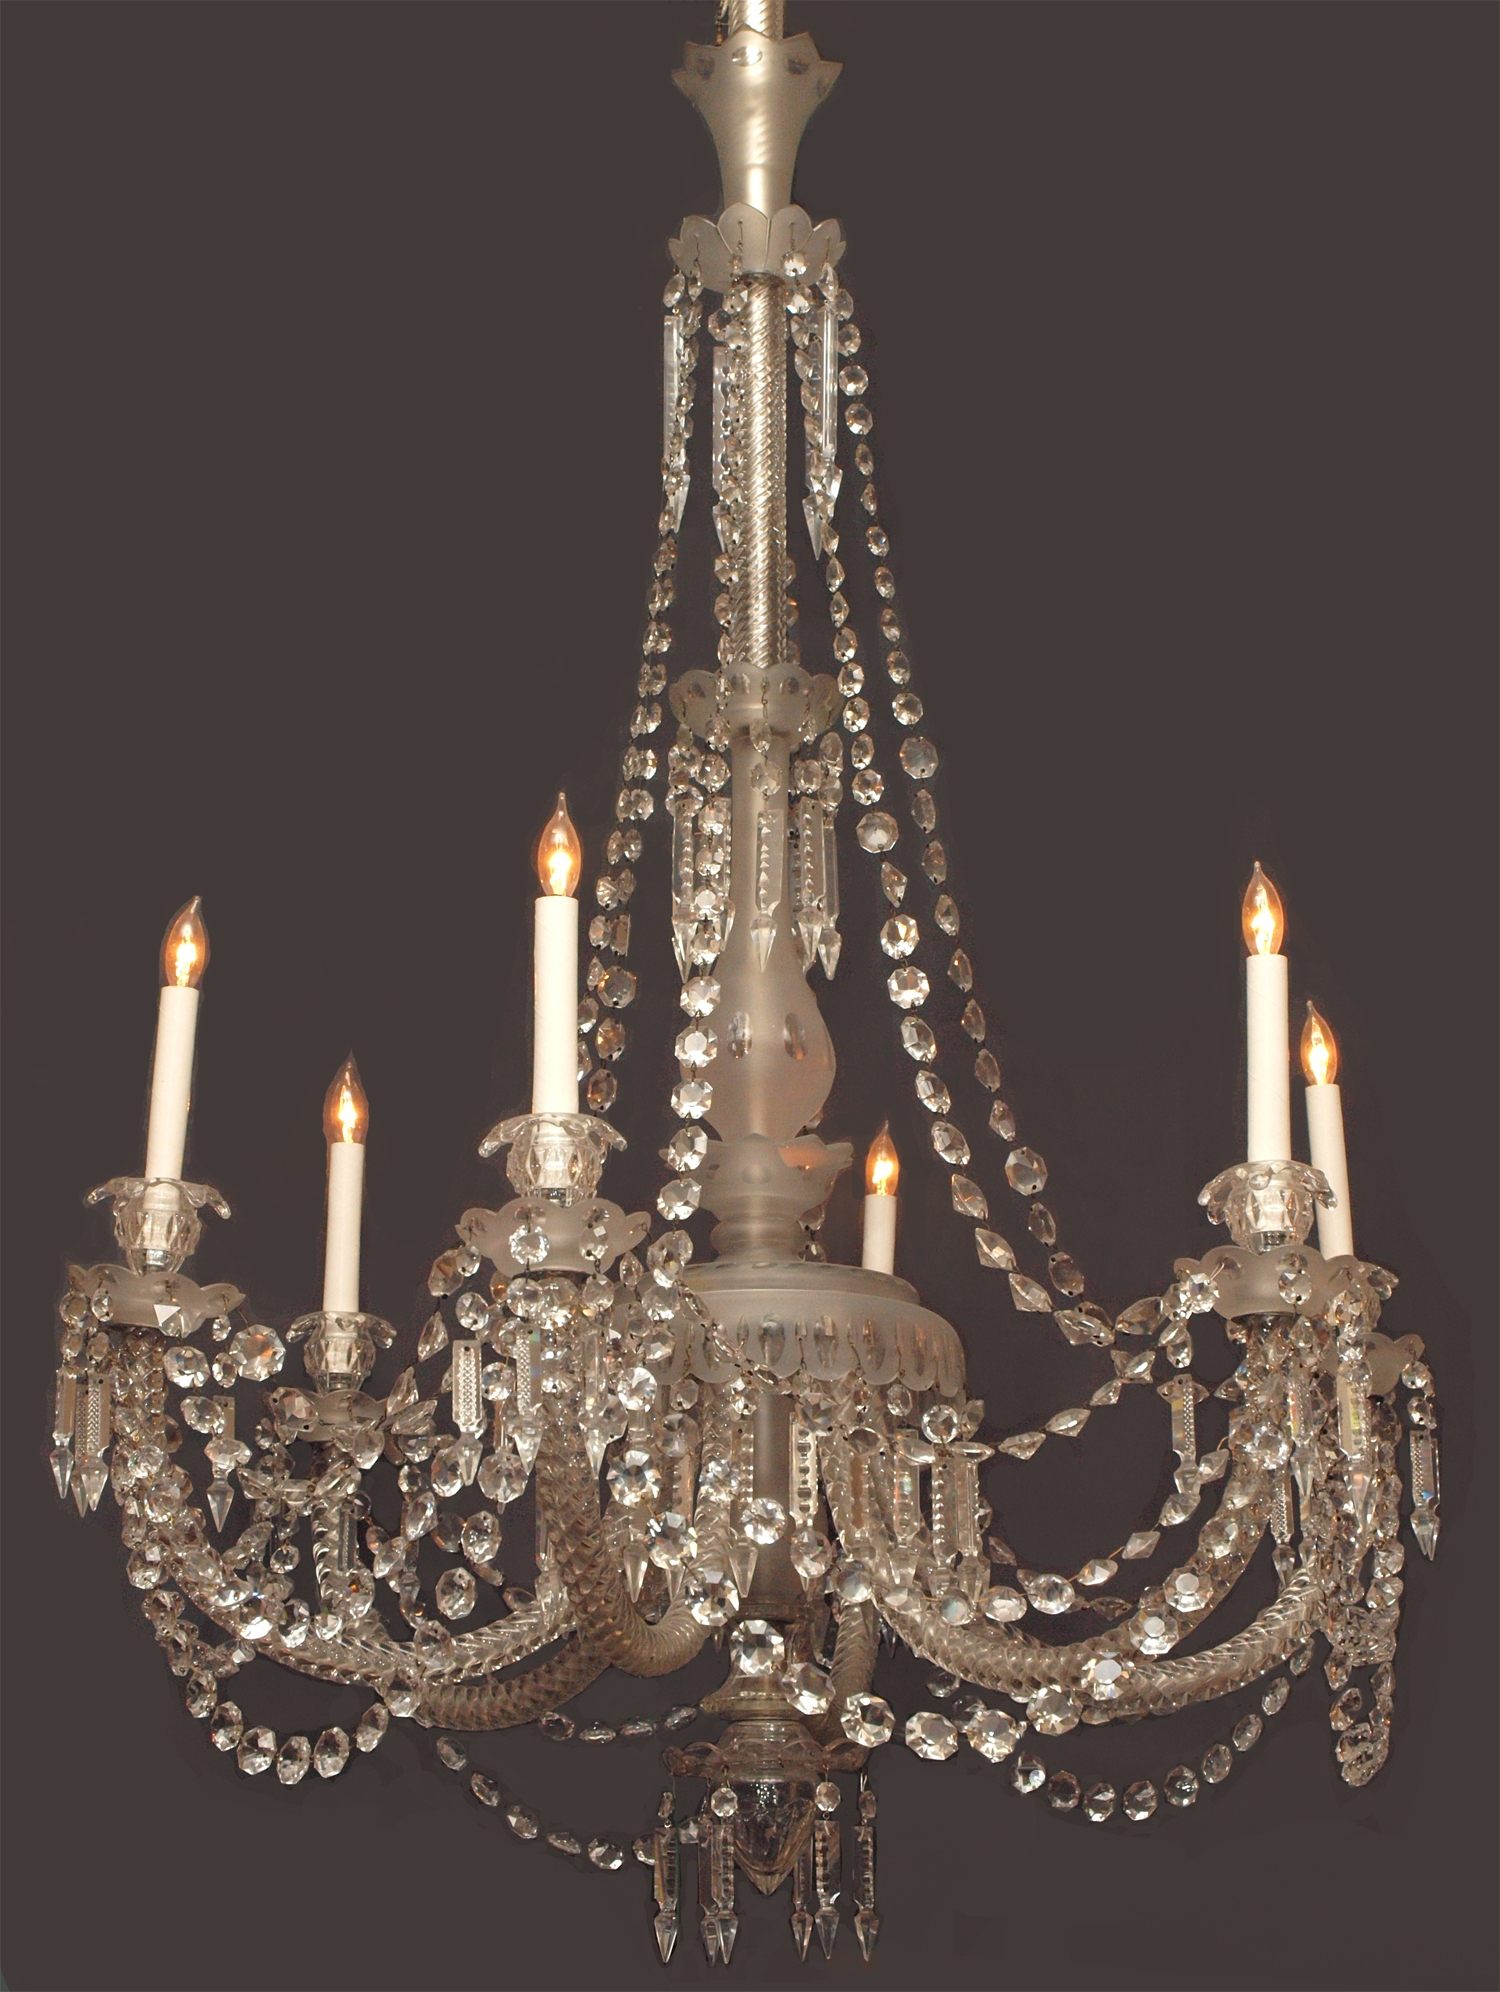 Antique English 19th Century Gasolier Fine Lead Crystal Chandelier With Lead Crystal Chandelier (Image 6 of 15)